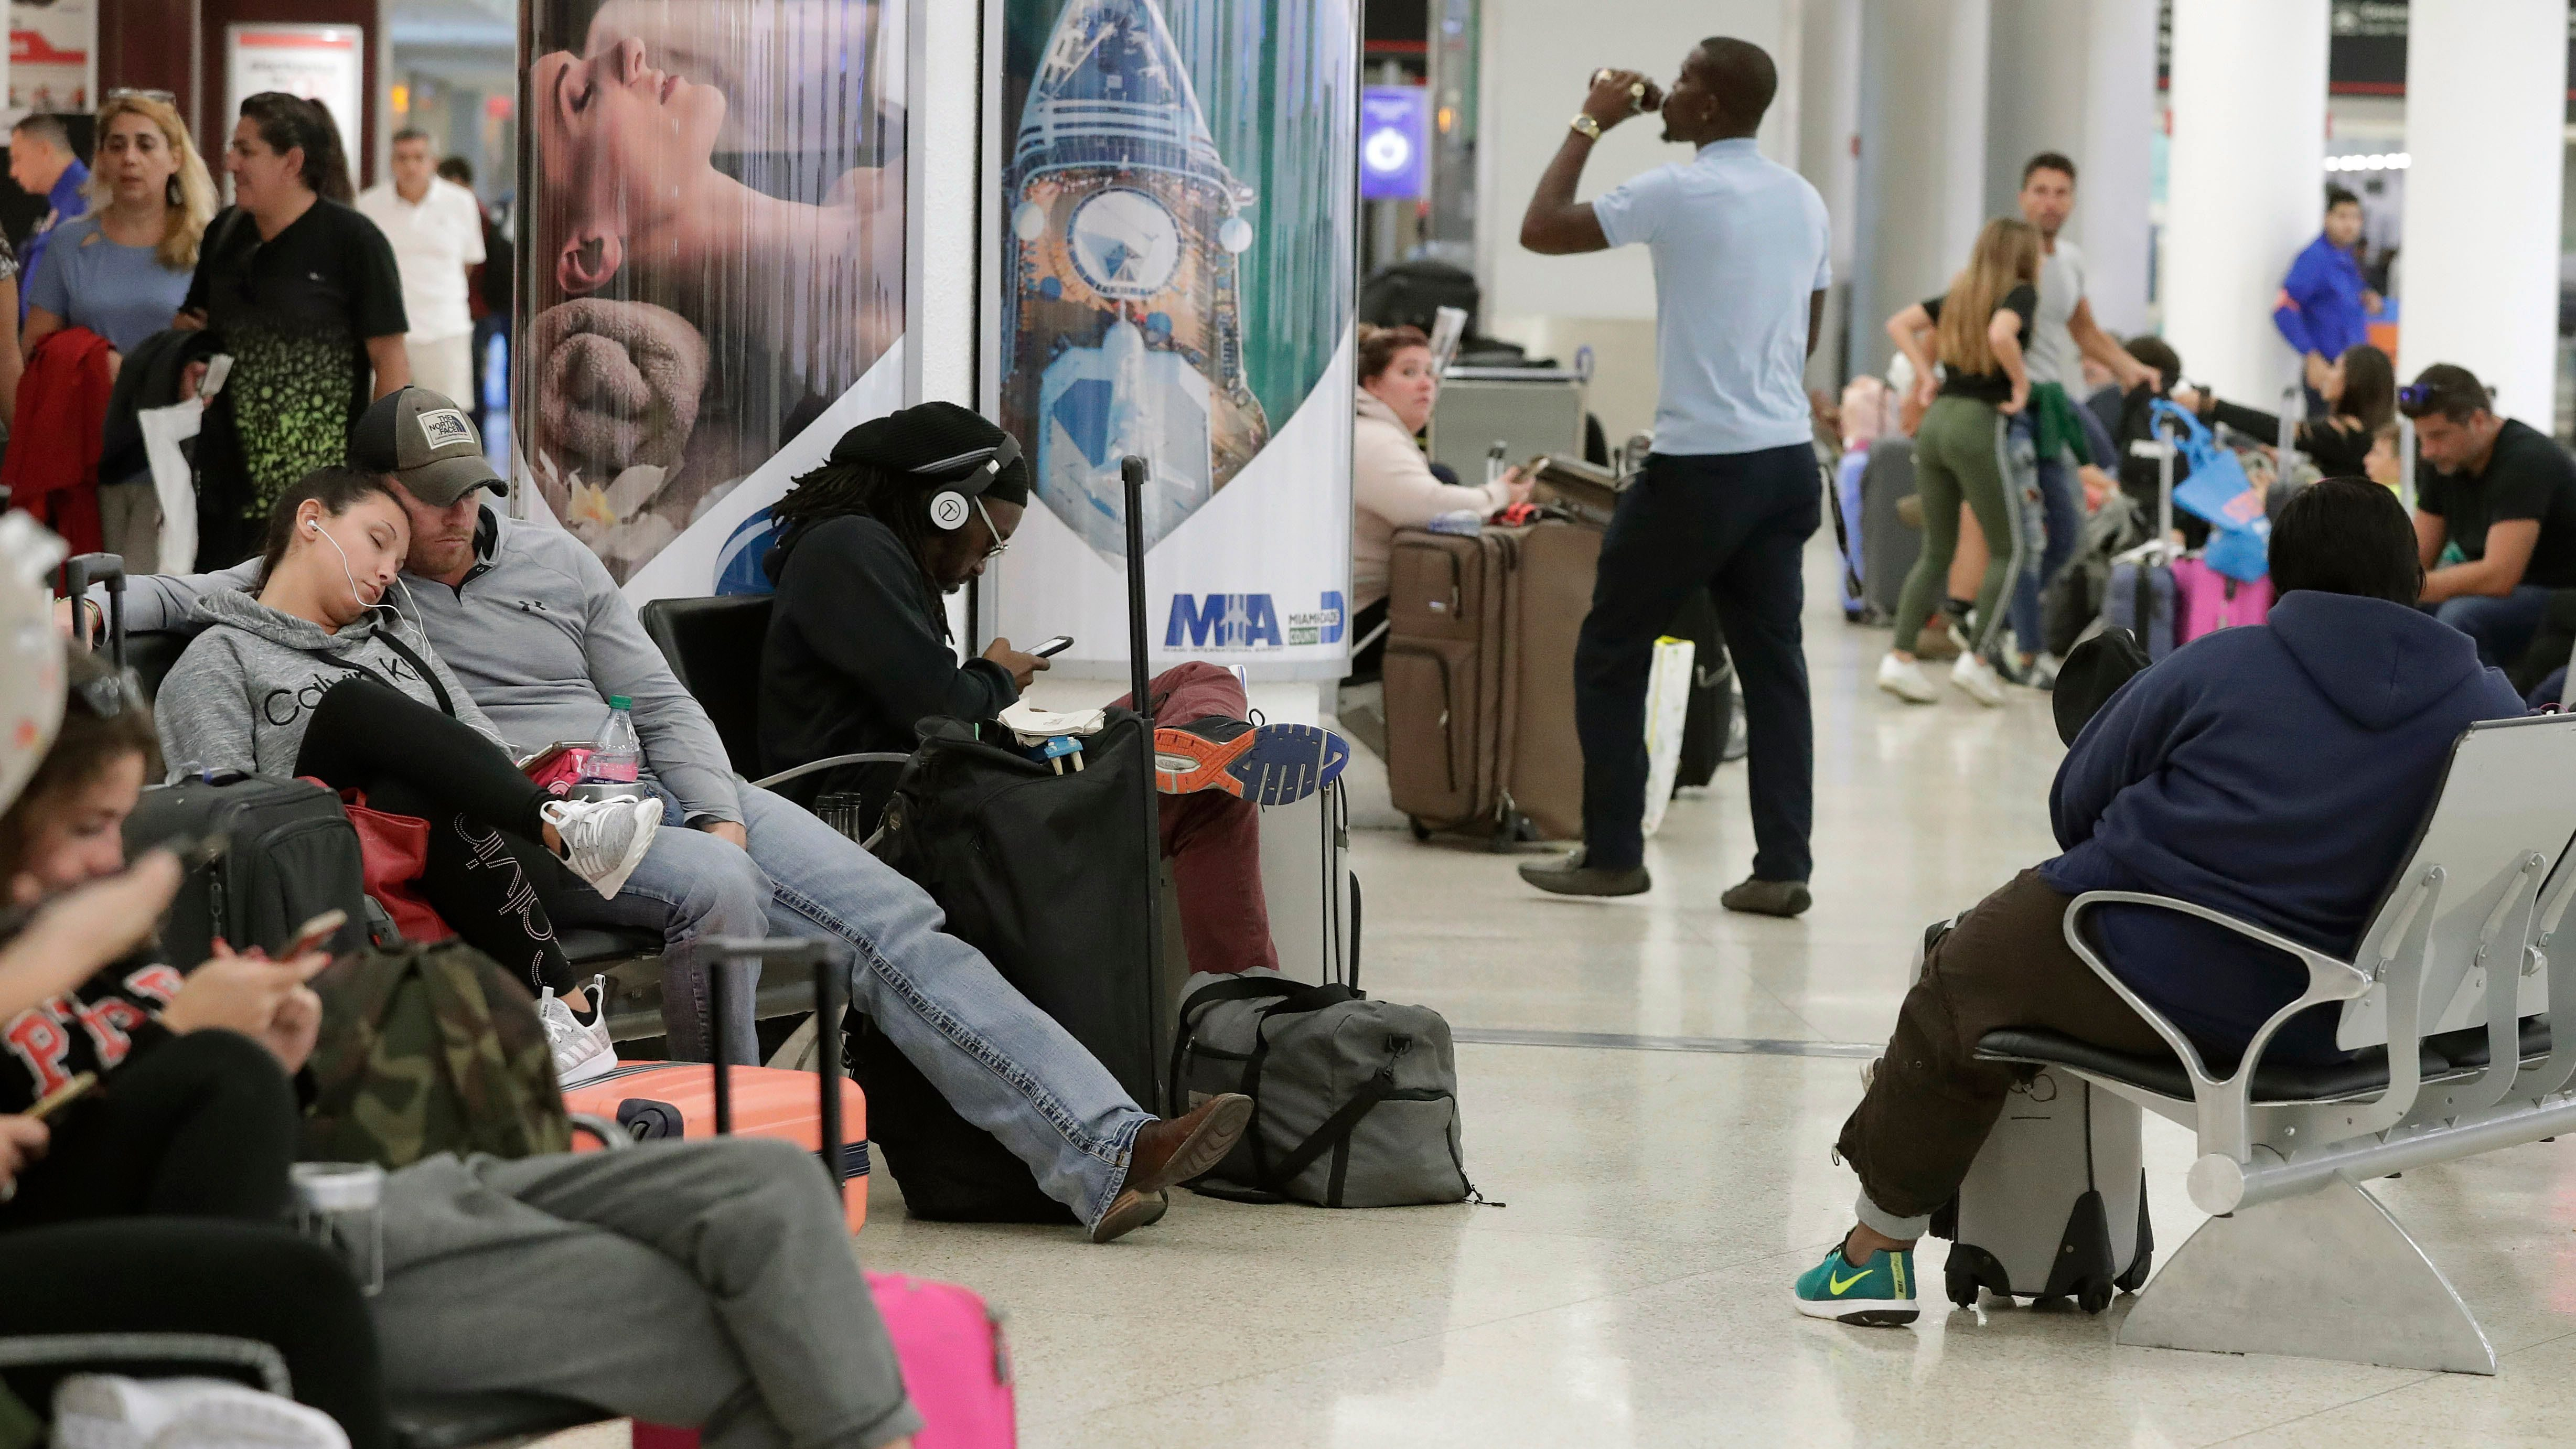 Travelers wait near a closed down terminal at the Miami International Airport on Saturday, Jan. 12, 2019, in Miami. The partial government shutdown is starting to strain the national aviation system, with unpaid security screeners staying home, air-traffic controllers suing the government and safety inspectors off the job. (AP Photo/Brynn Anderson)